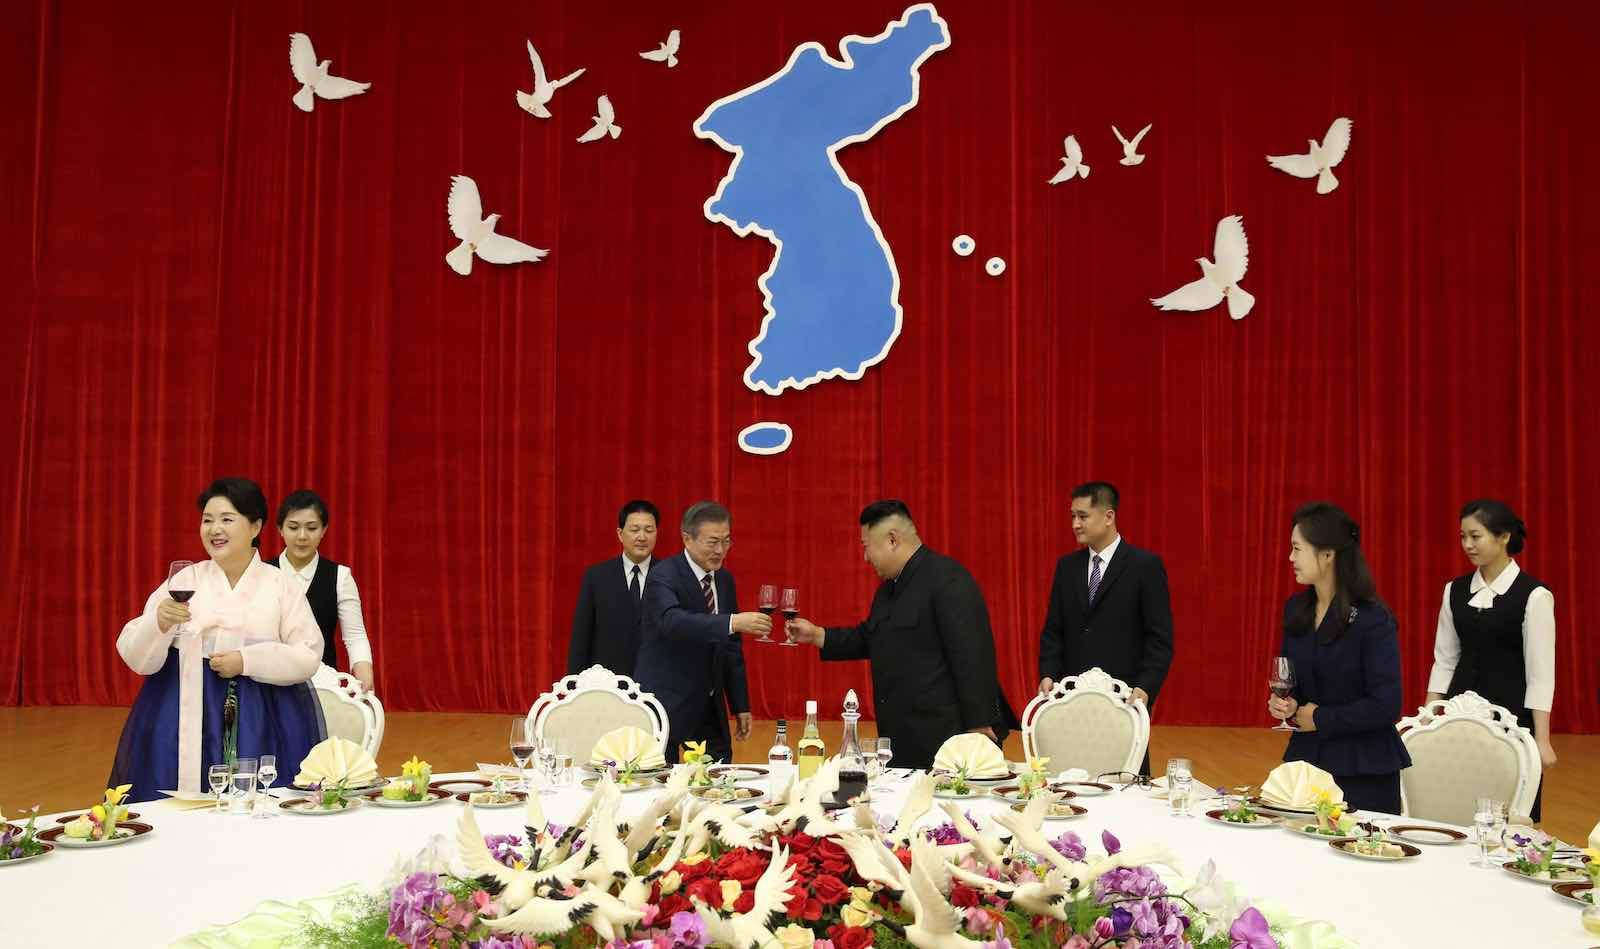 South Korea's President Moon Jae-in toasts with North Korea's Kim Jong-un on 18 September in Pyongyang, North Korea (Photo: Pyongyang Press Corps/Getty)